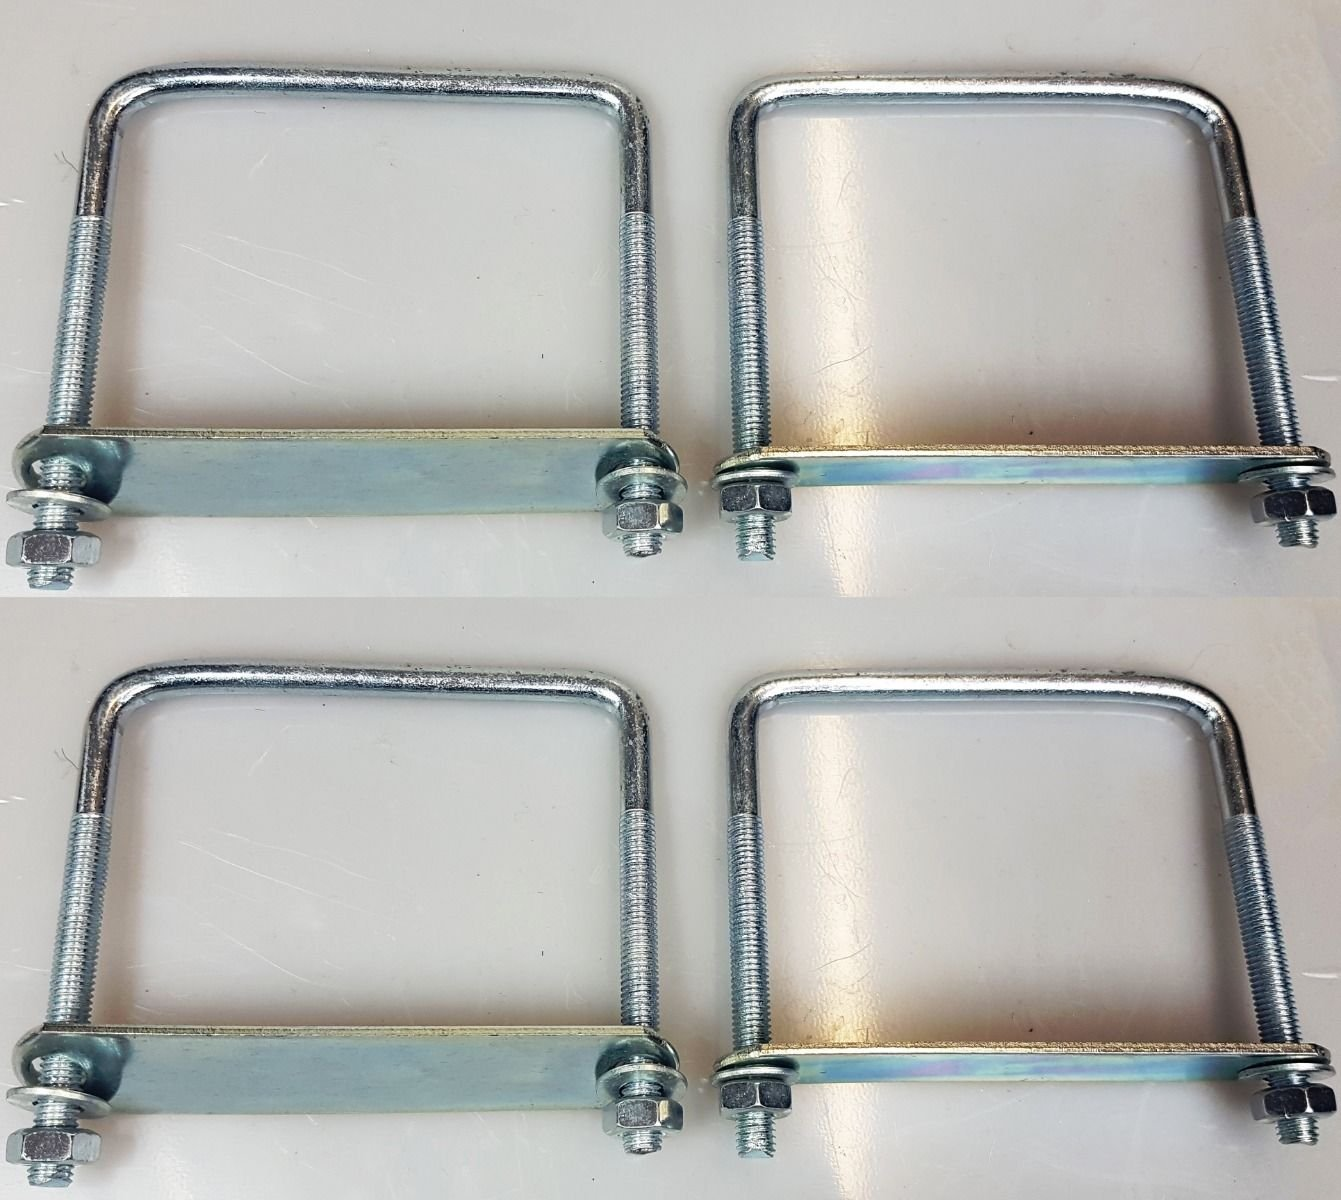 4 x square Brackets u bolts for Boat trailer 120x120x10mm with Nuts & Plate UB3 UBS-120C CSS